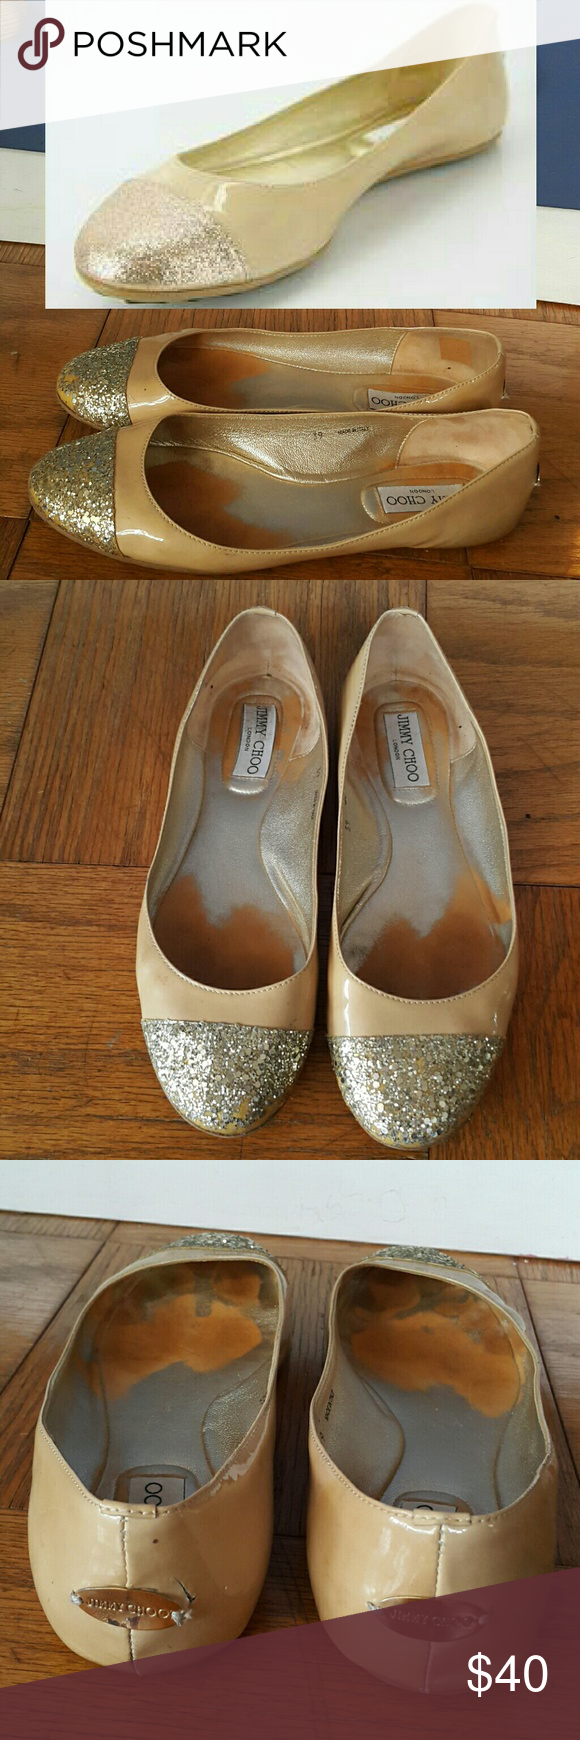 fbe2266d0b04 JIMMY CHOO Ballet Shoes Size 39 Fair condition. Some glitters fell off.  Faded base